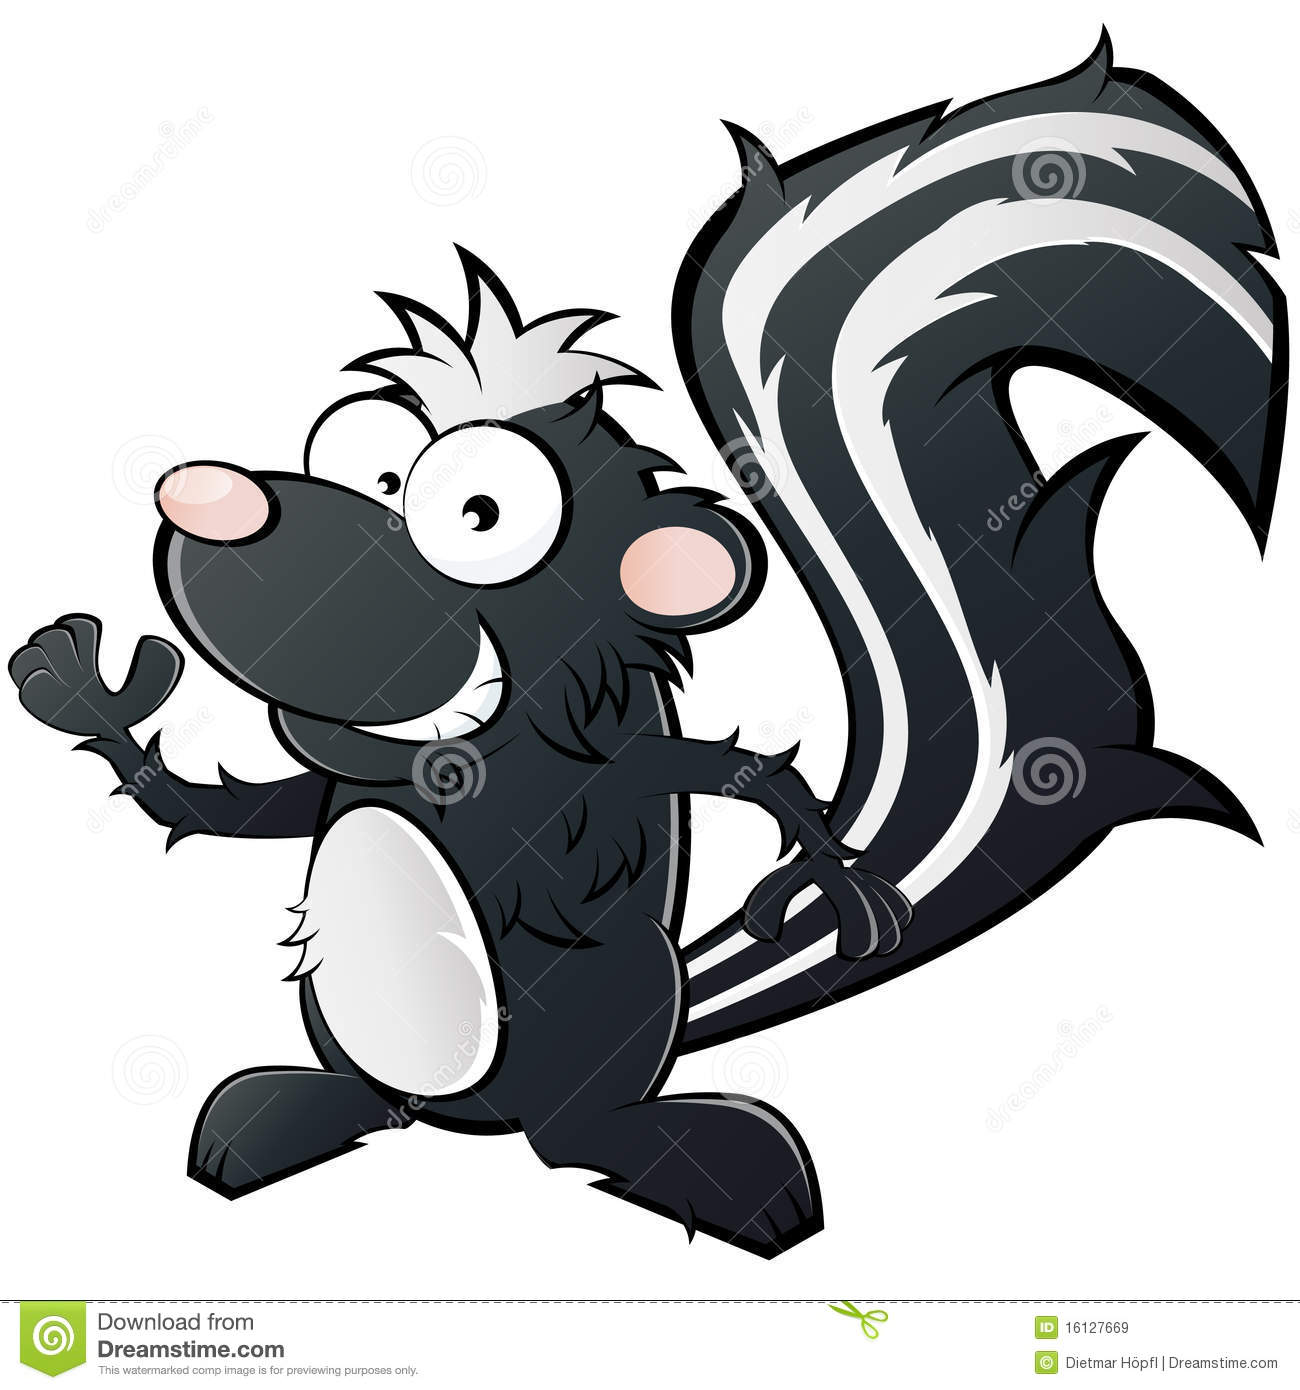 Cartoon illustration of smiling skunk, isolated on white background.